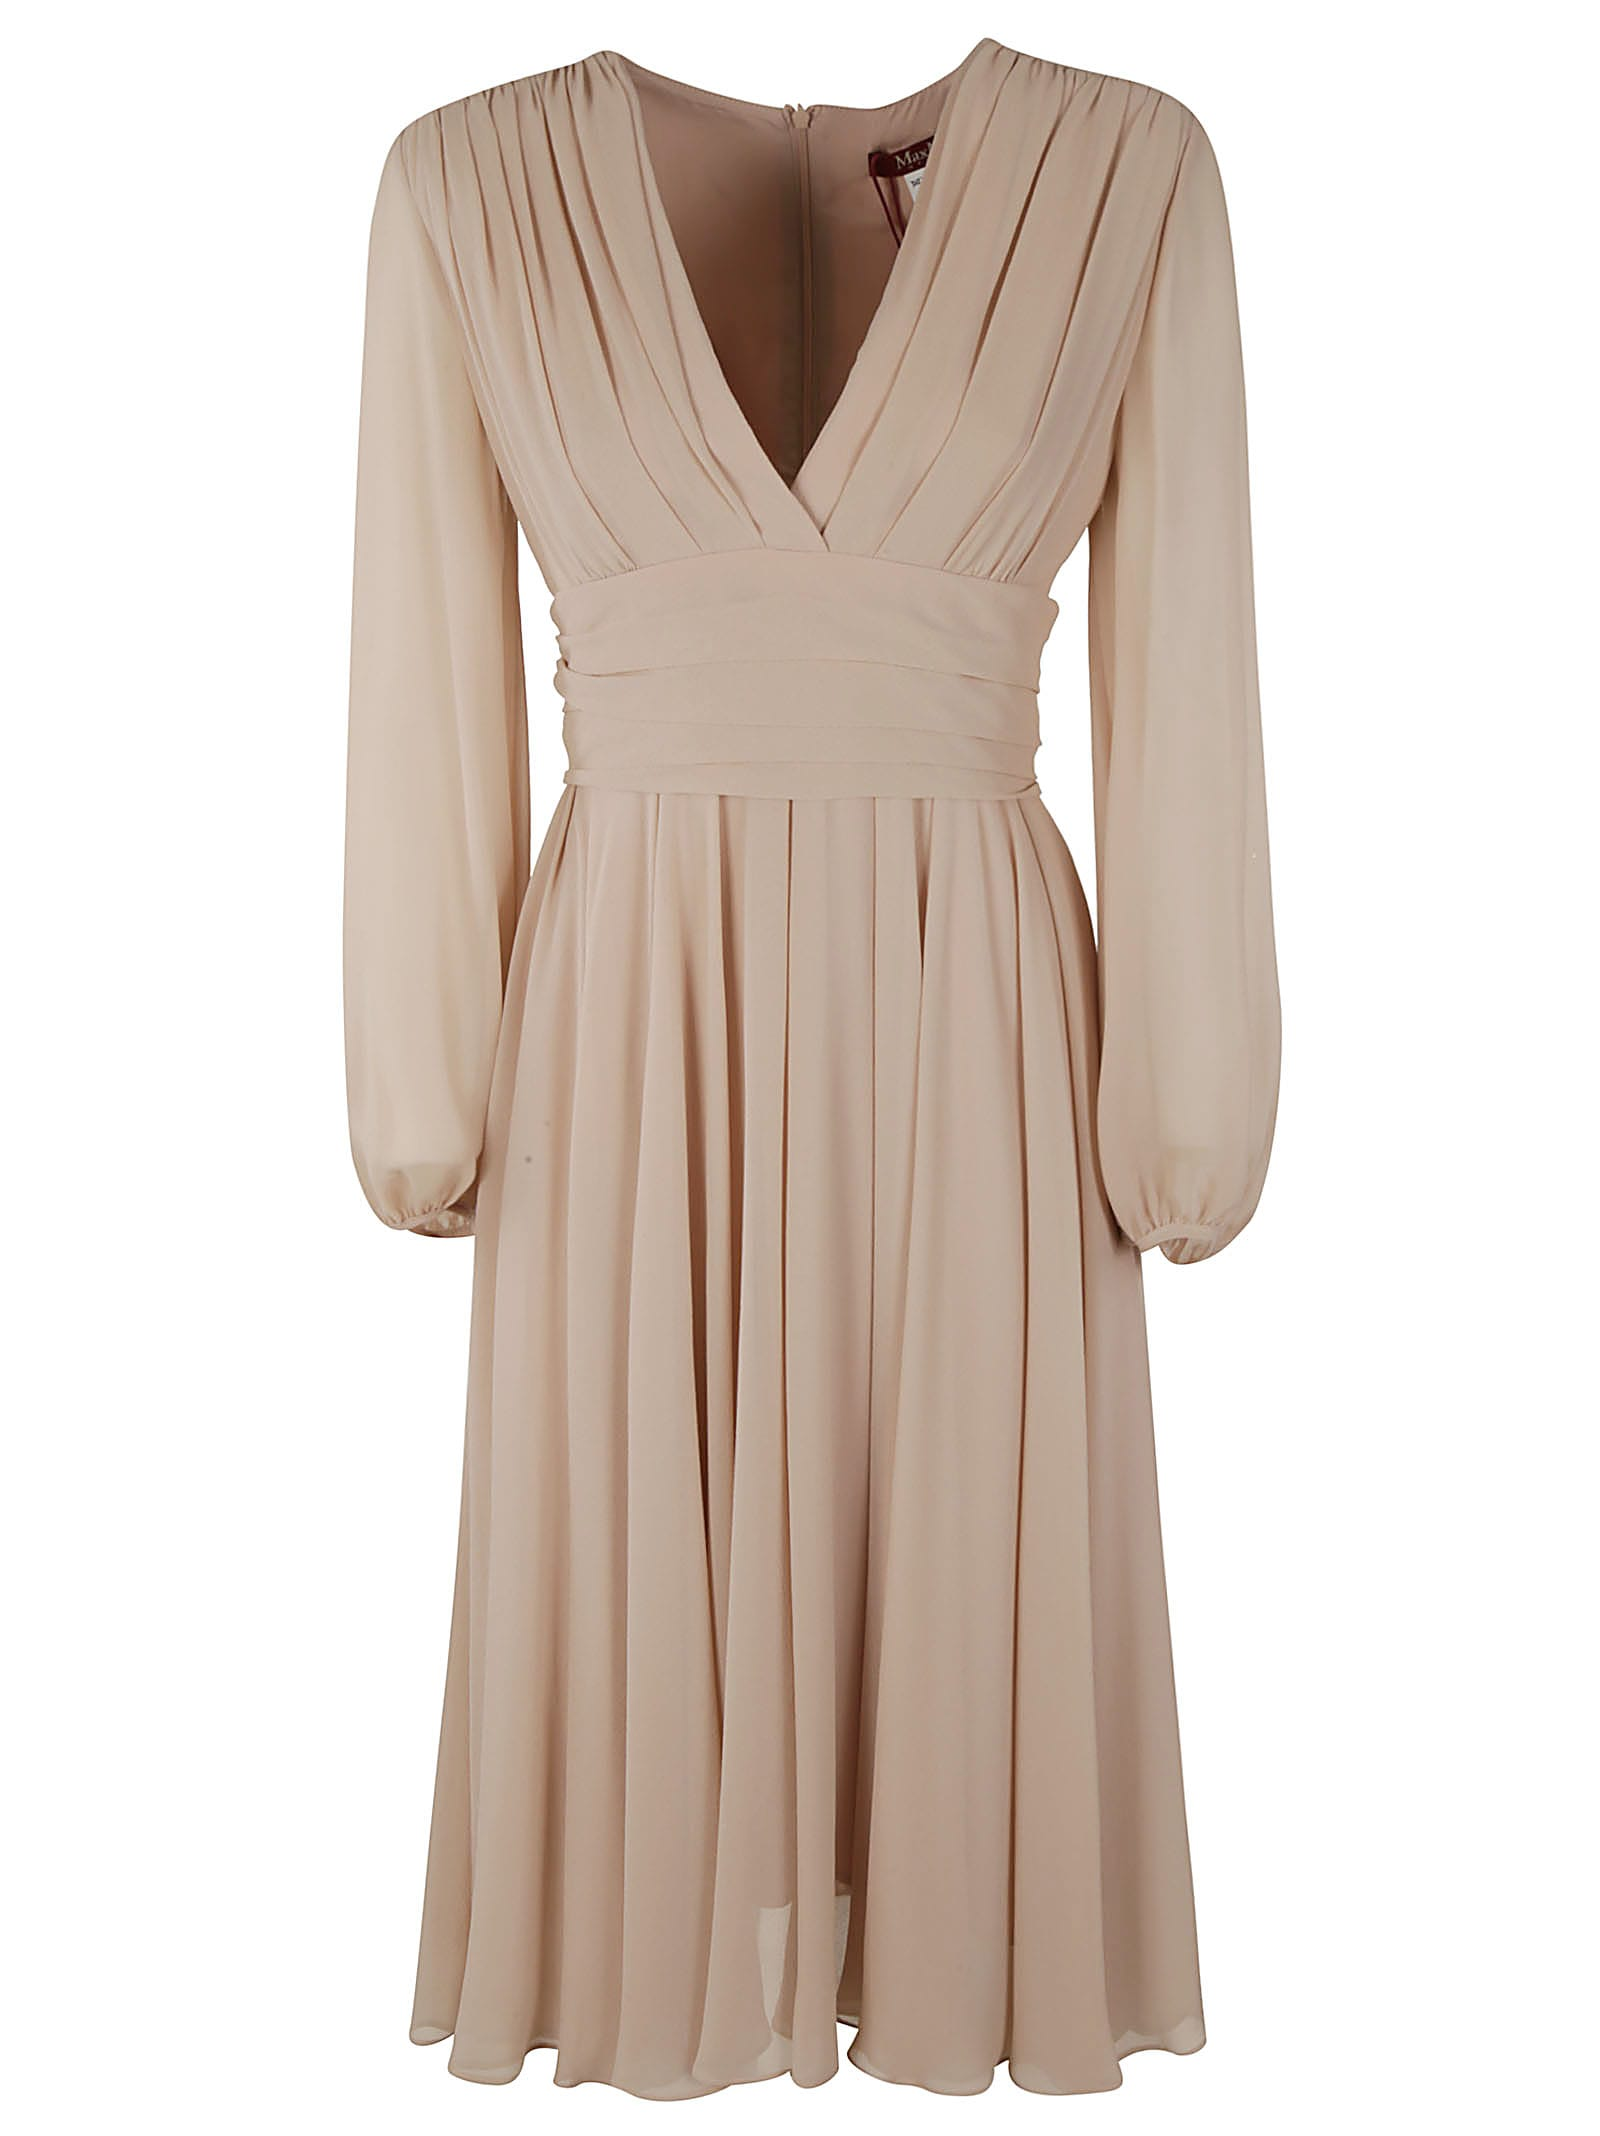 Max Mara Studio Campos Dress